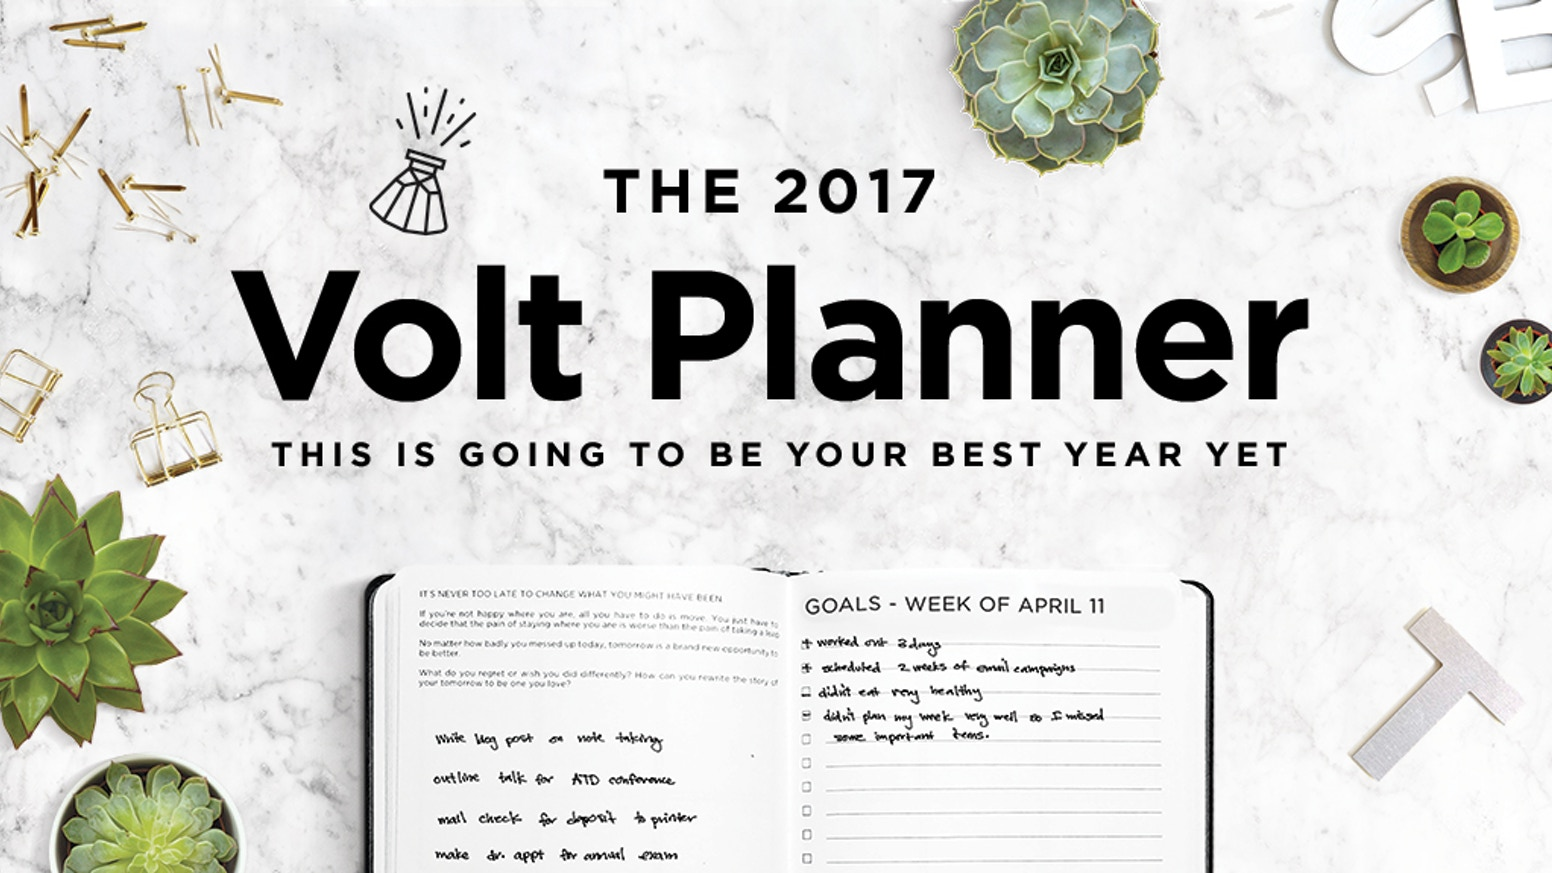 A proven goal-setting, planning, and productivity system for superstars. Make 2017 your best year yet.